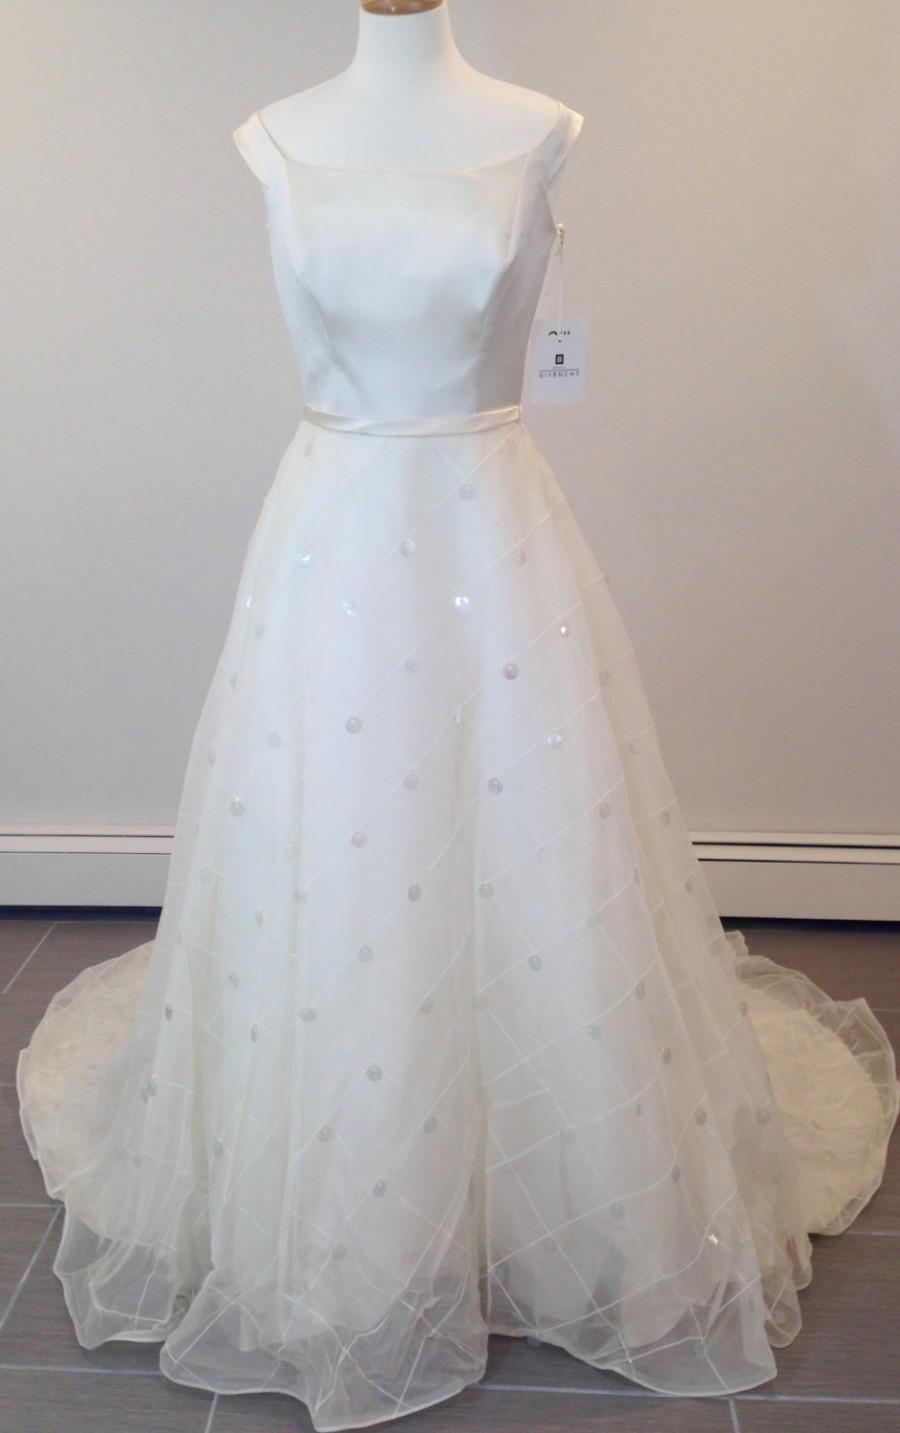 Düğün - This is a beautiful Givenchy wedding dress size 8